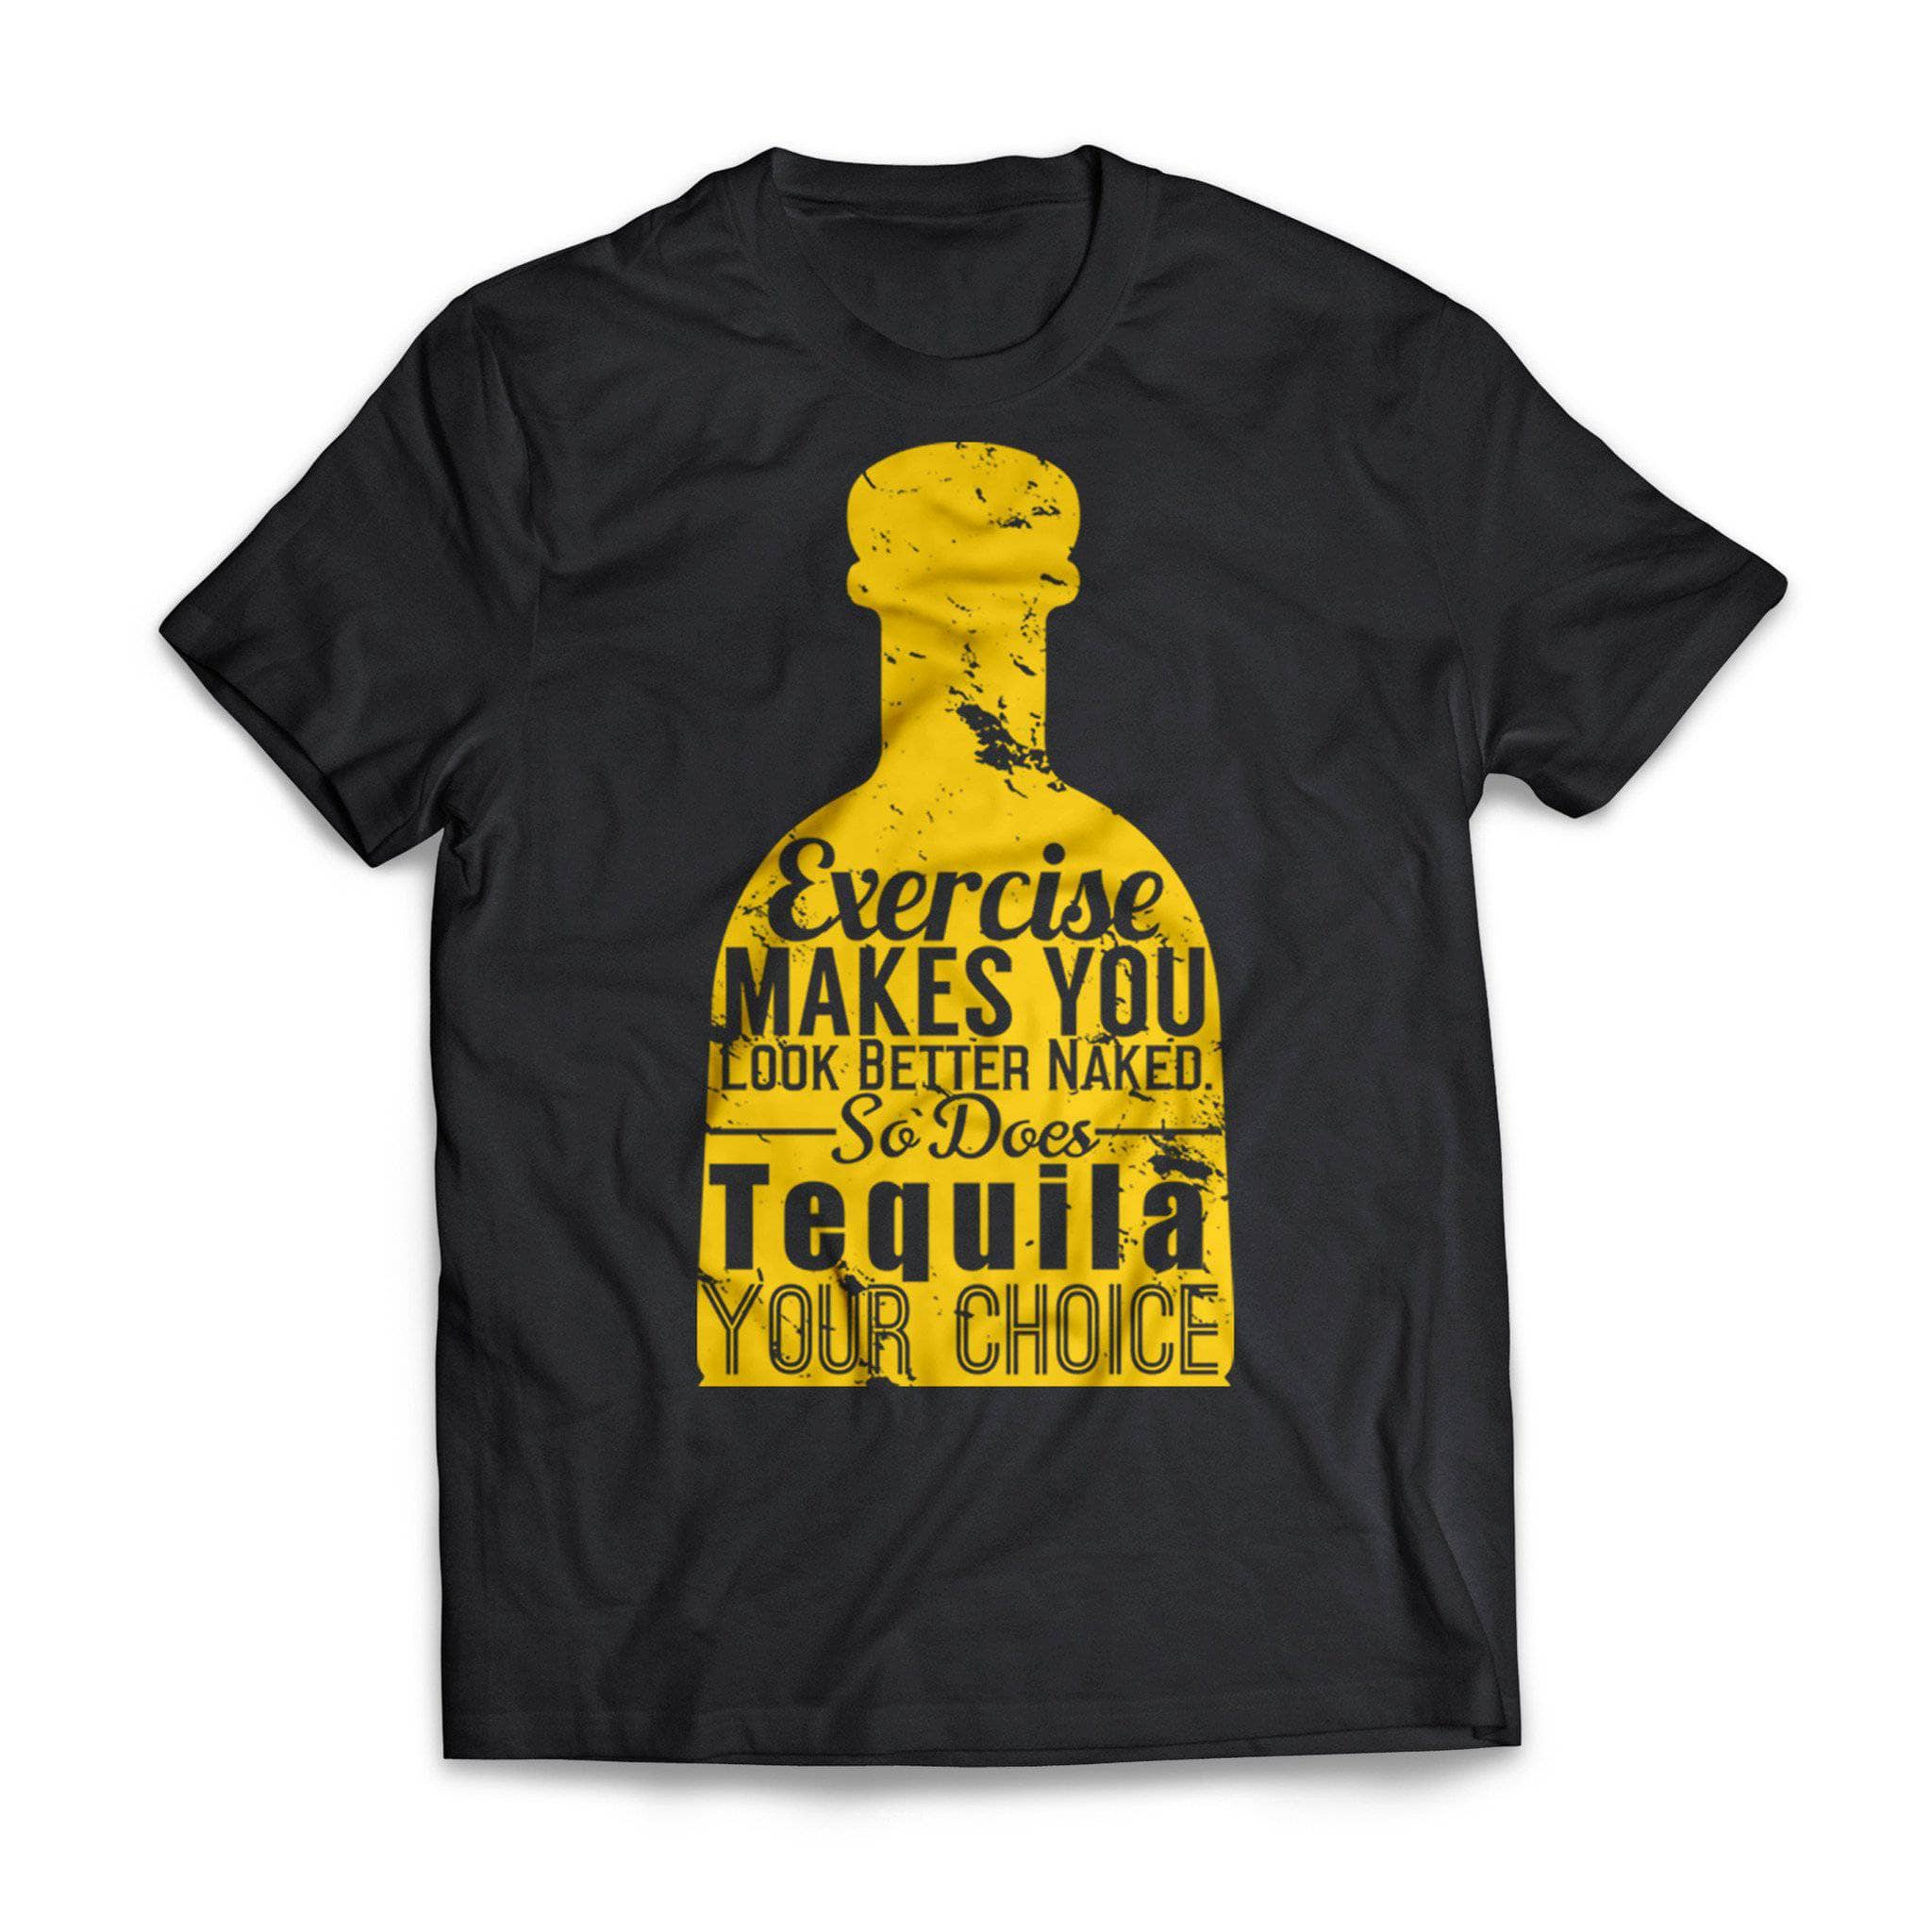 So Does Tequila